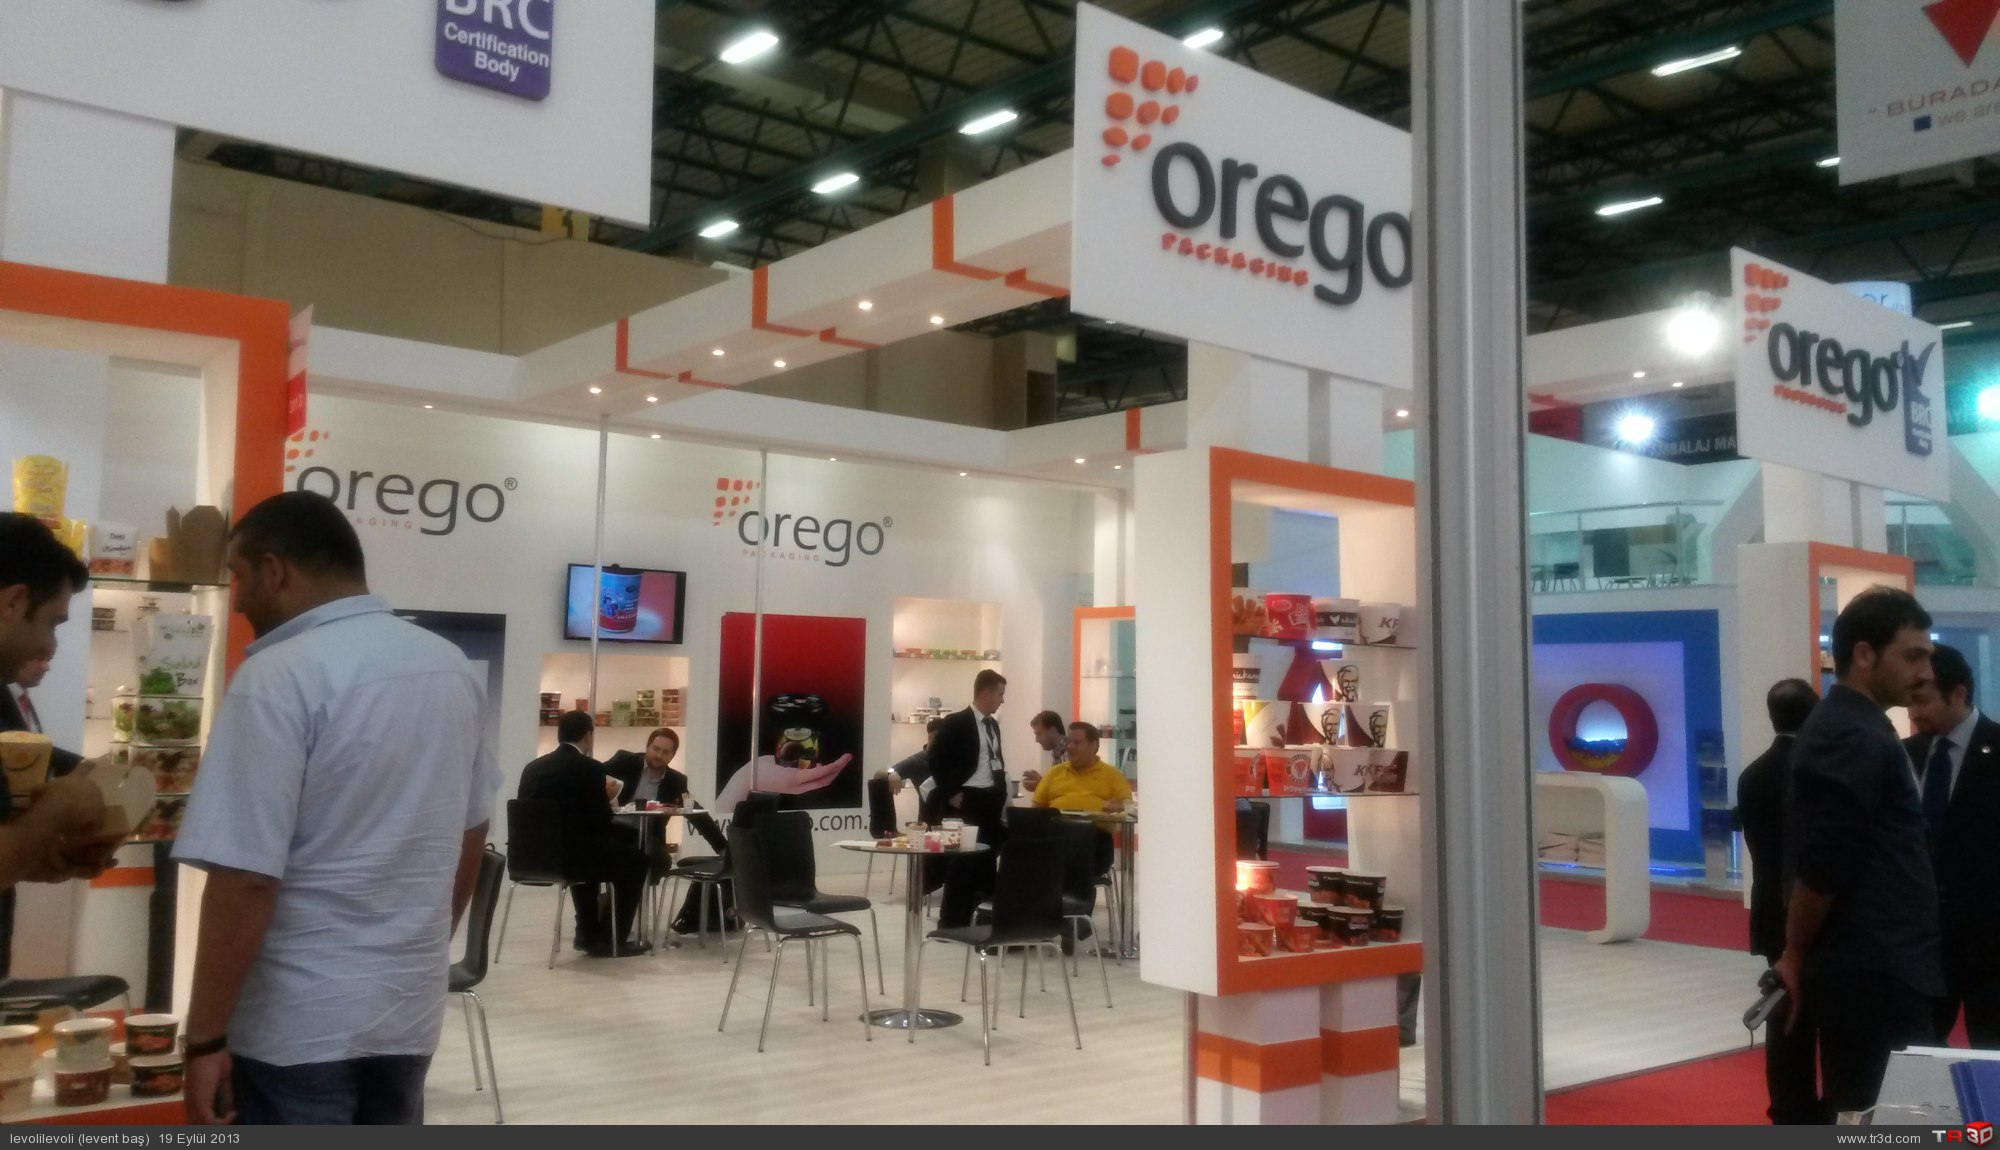 AHŞAP STAND OREGO 2